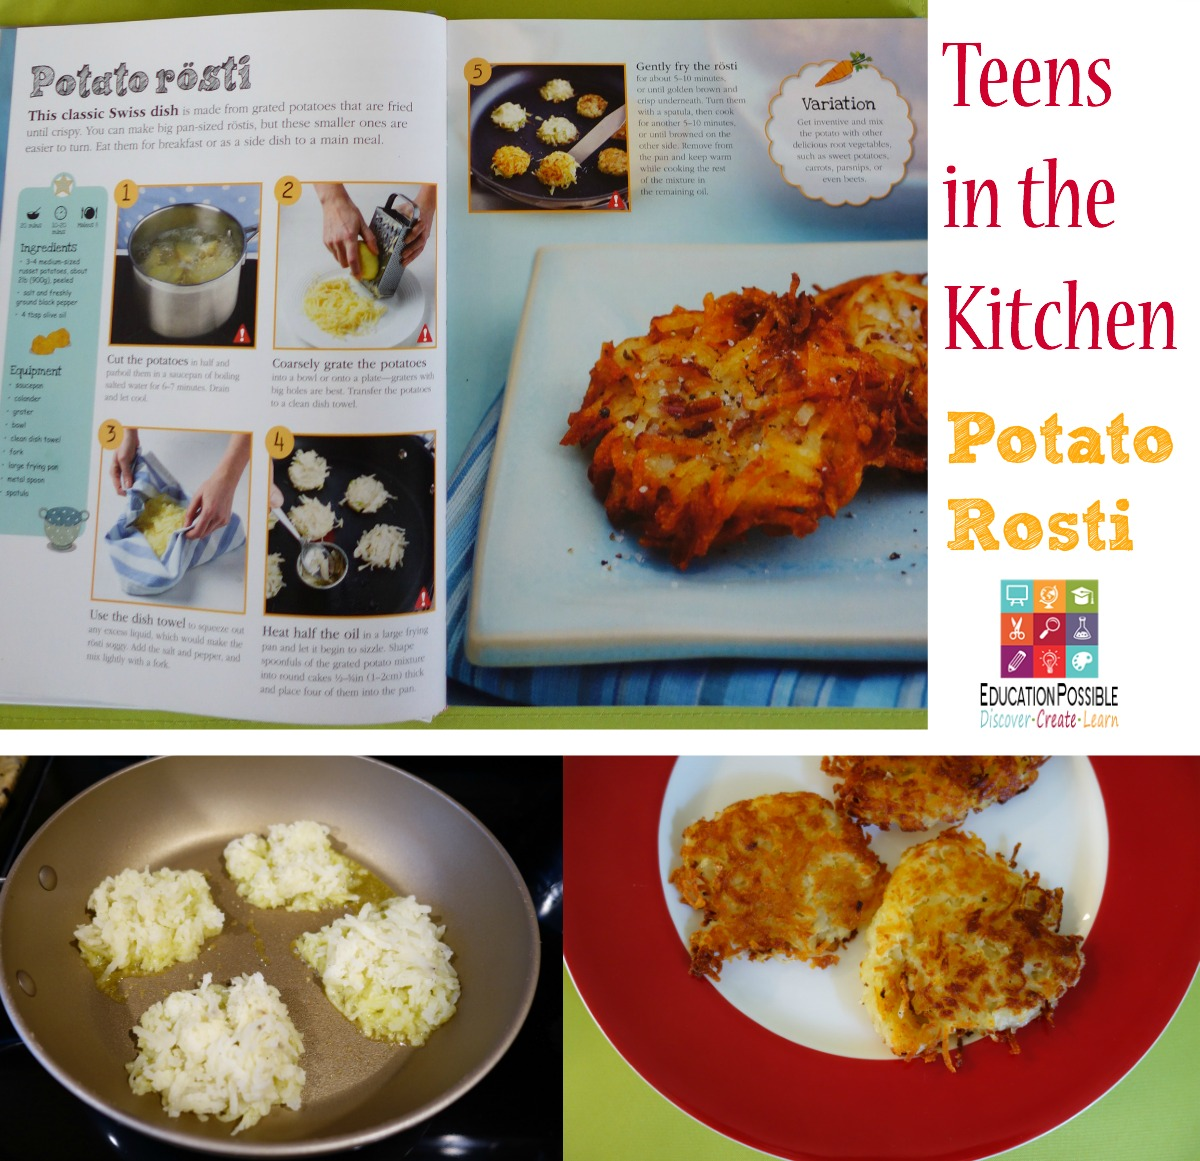 Teens in the Kitchen - Steps for Potato Rosti - Education Possible